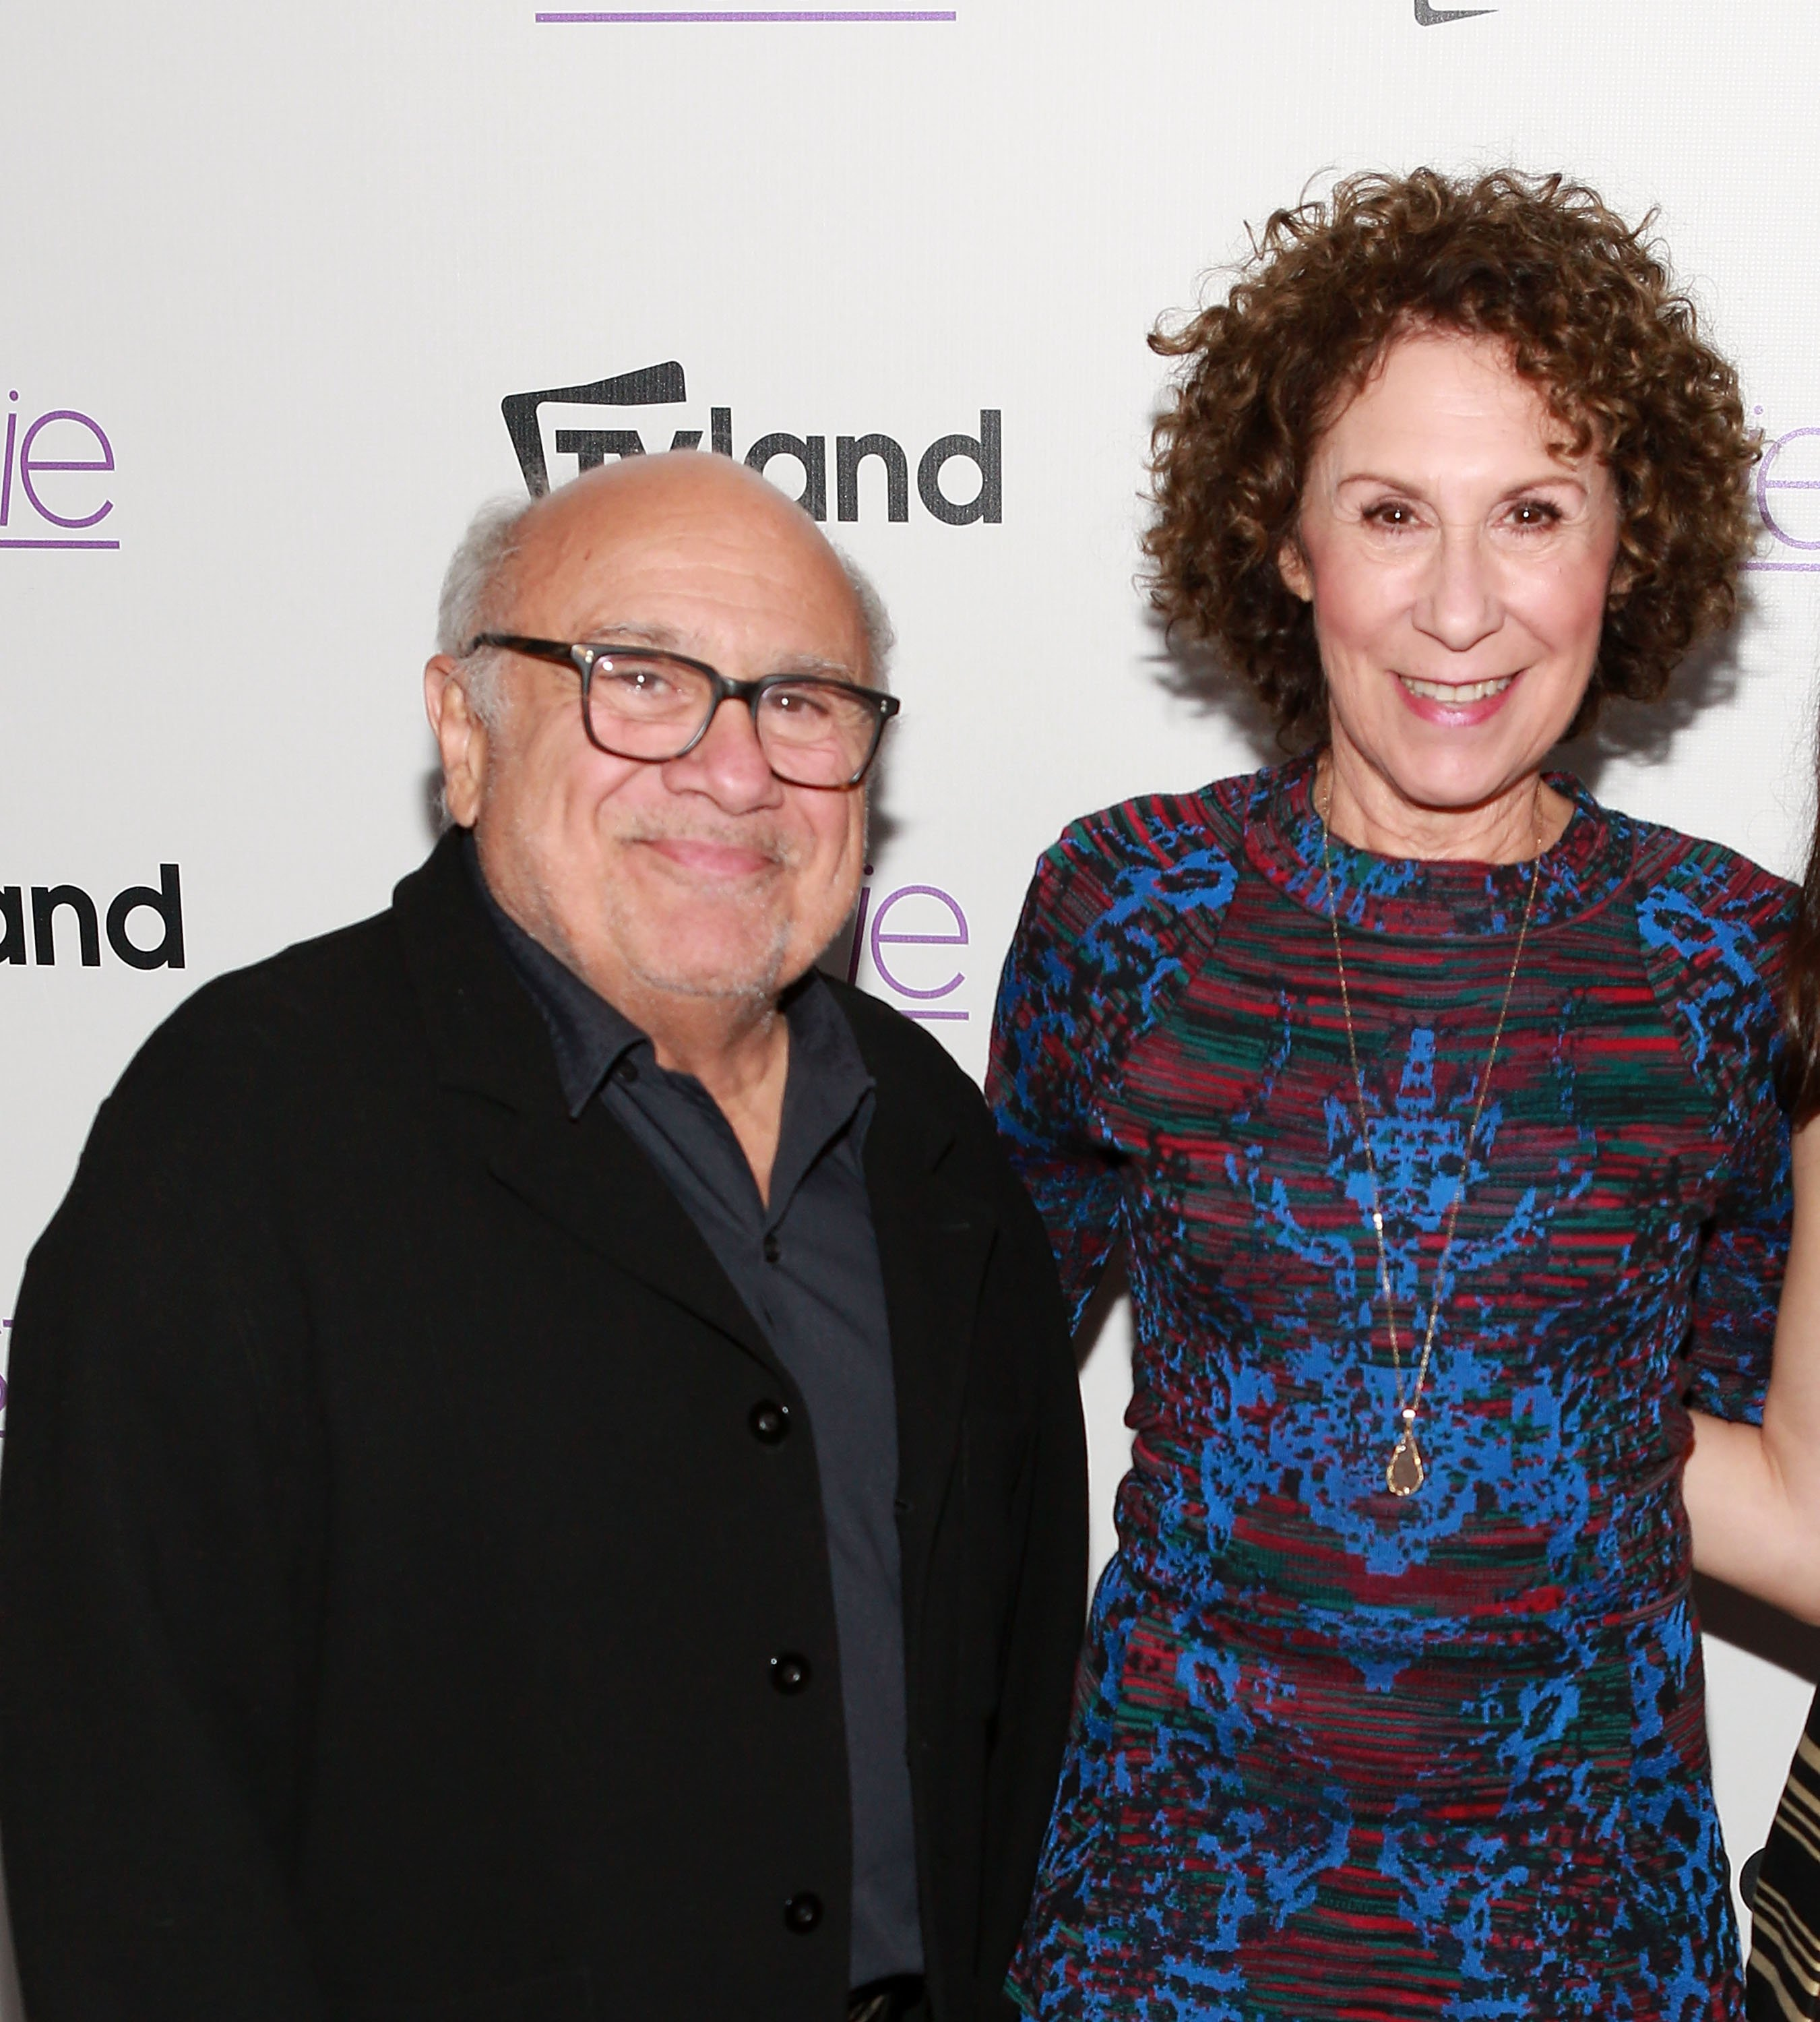 Image Source: Getty Images/Danny DeVito and Rhea Perlman